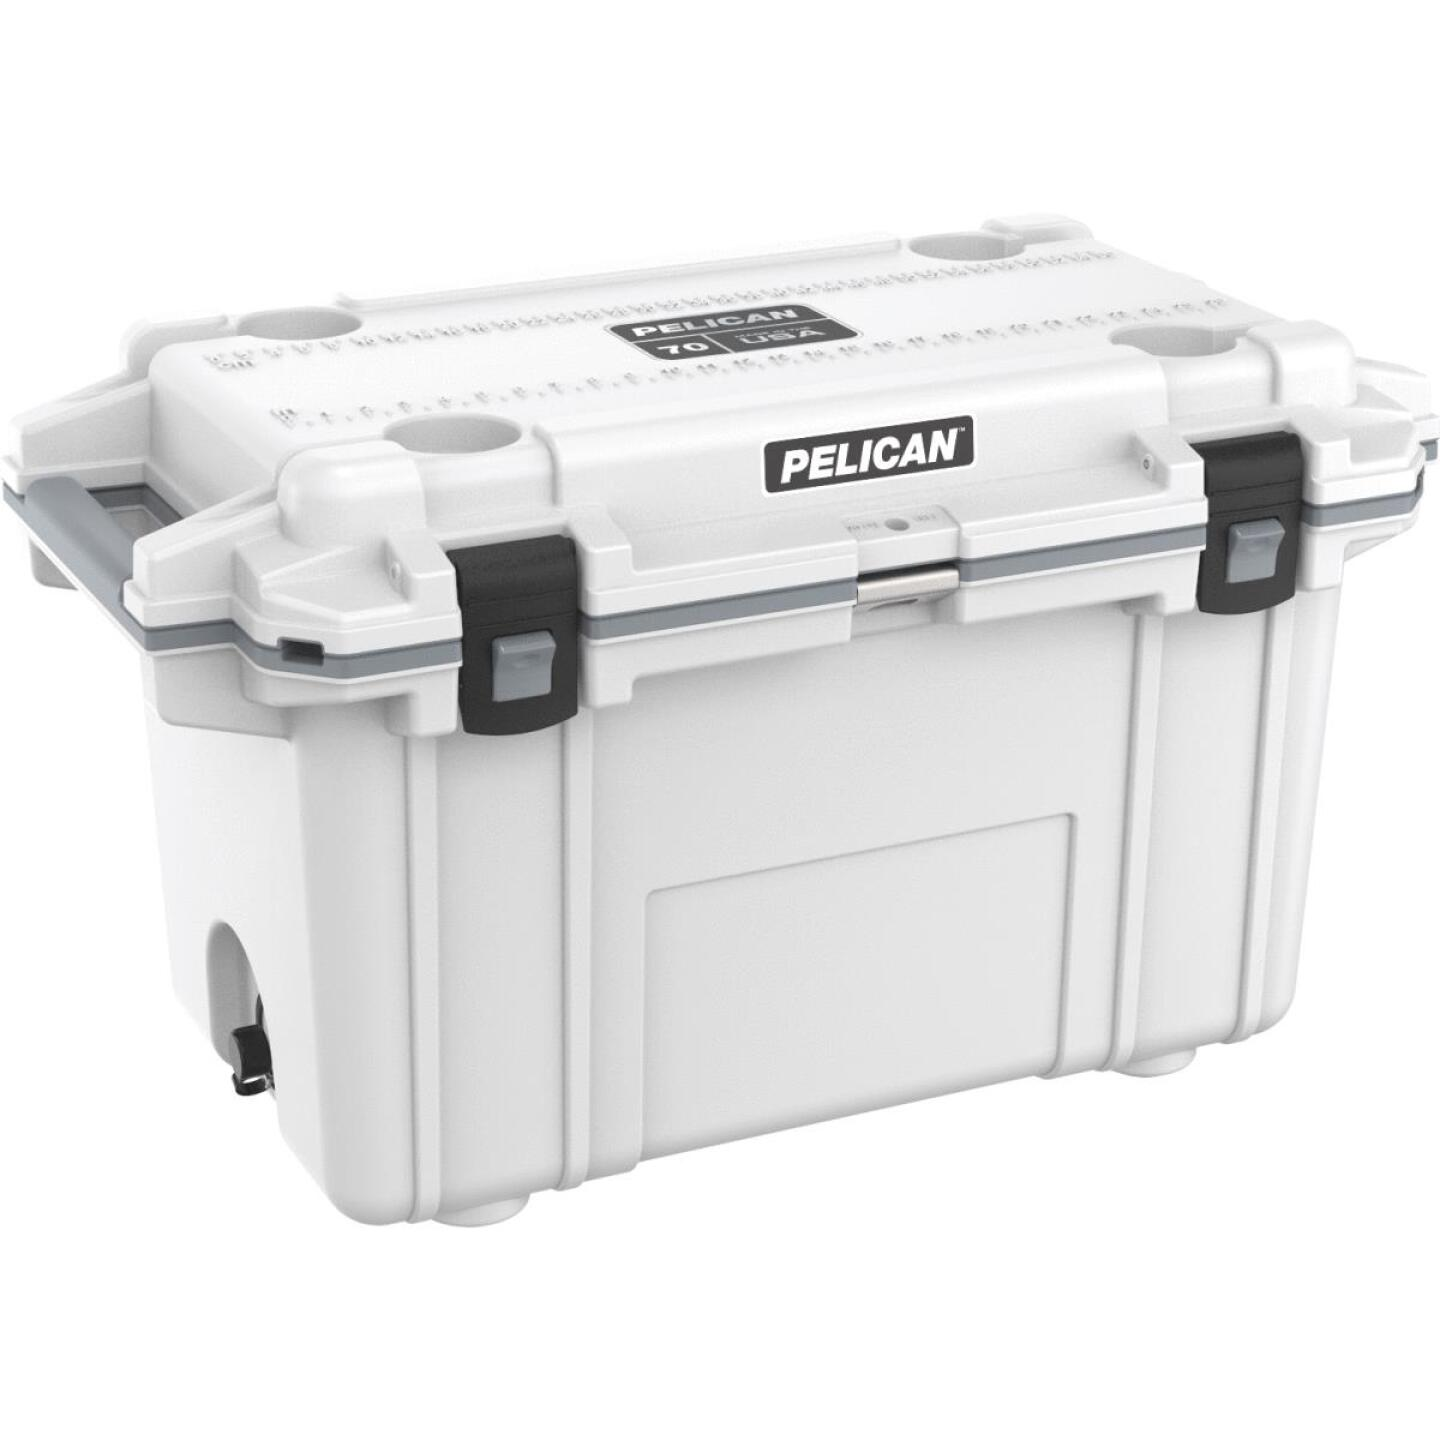 Pelican Elite 70-Qt. Cooler, White & Gray Image 1